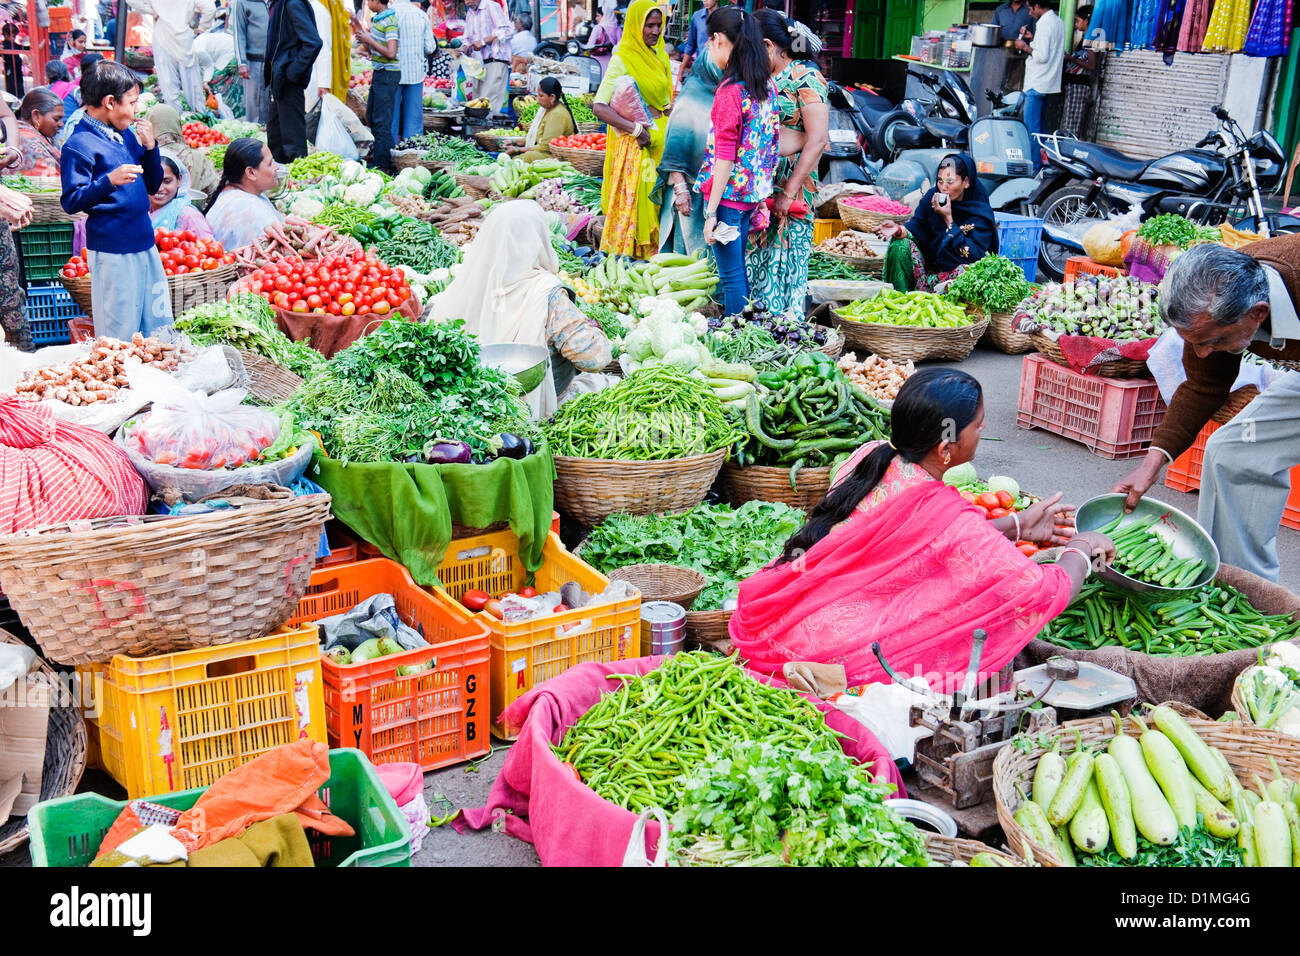 how to start fruit and vegetable business in india